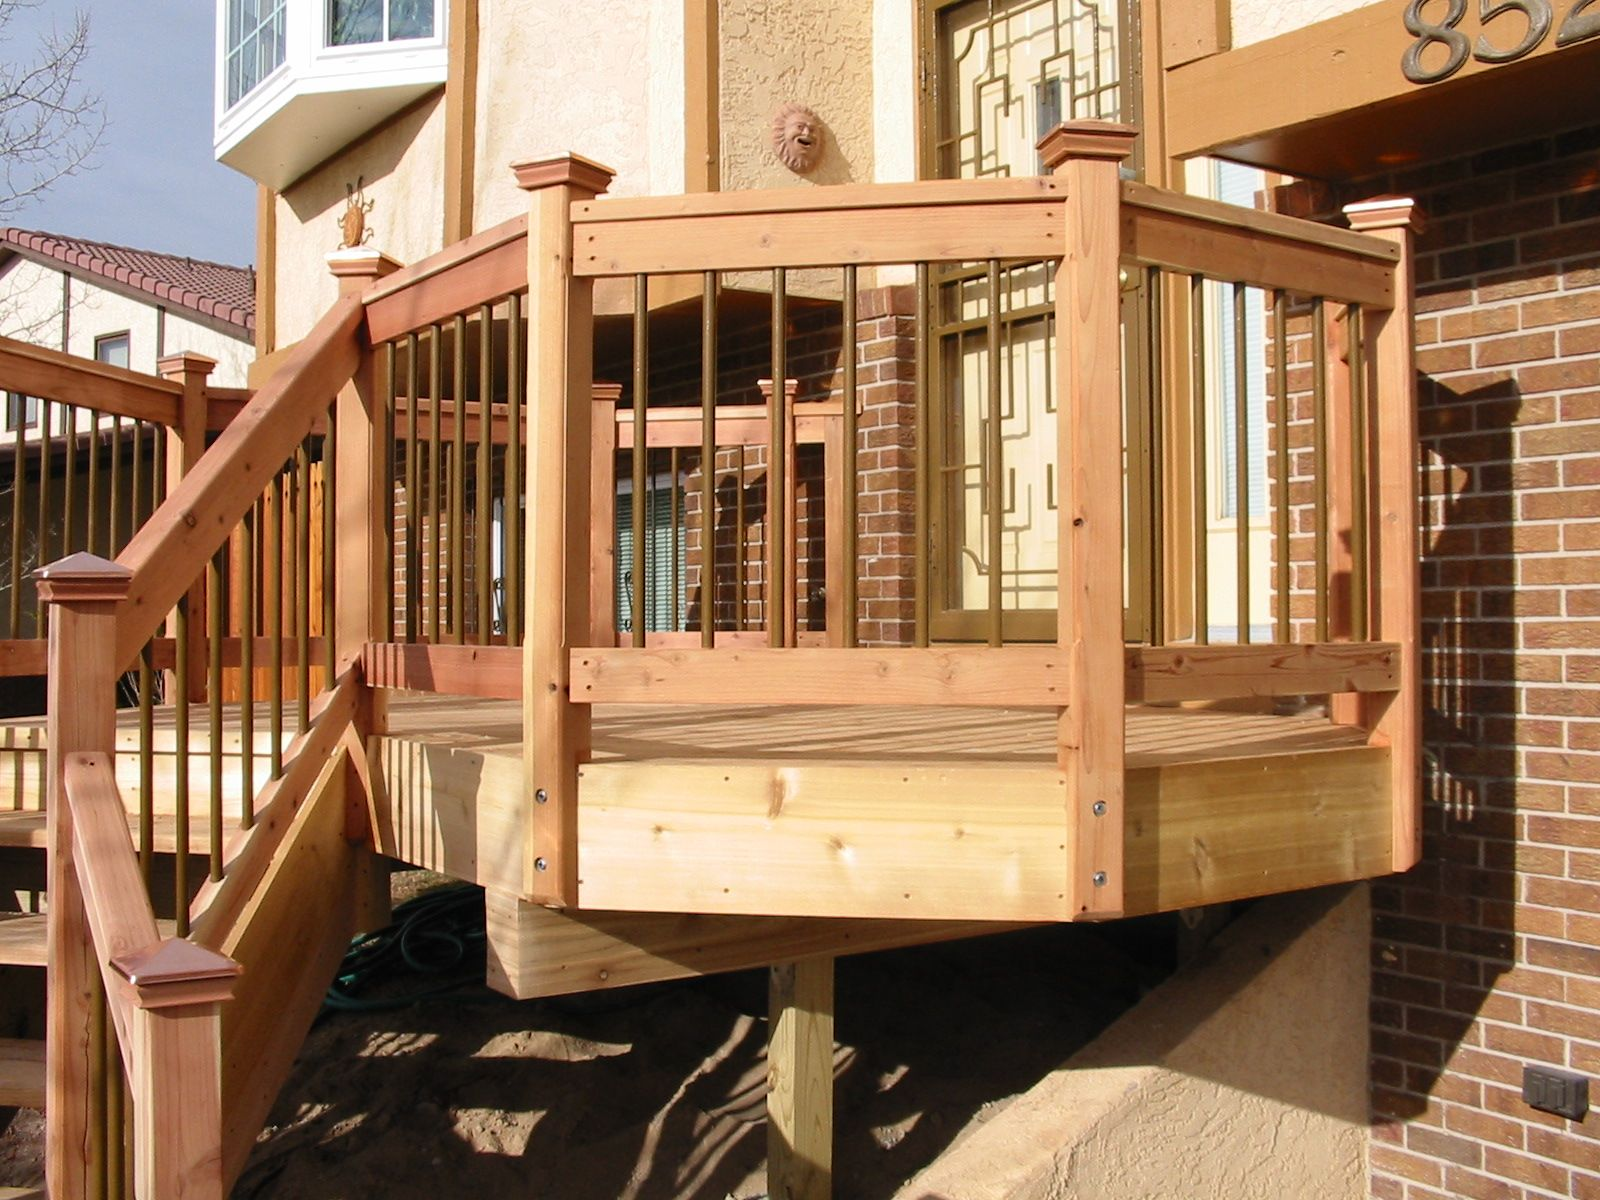 Enchanting rod iron fence with chic ornament for outdoor design appealing deck railing with wooden